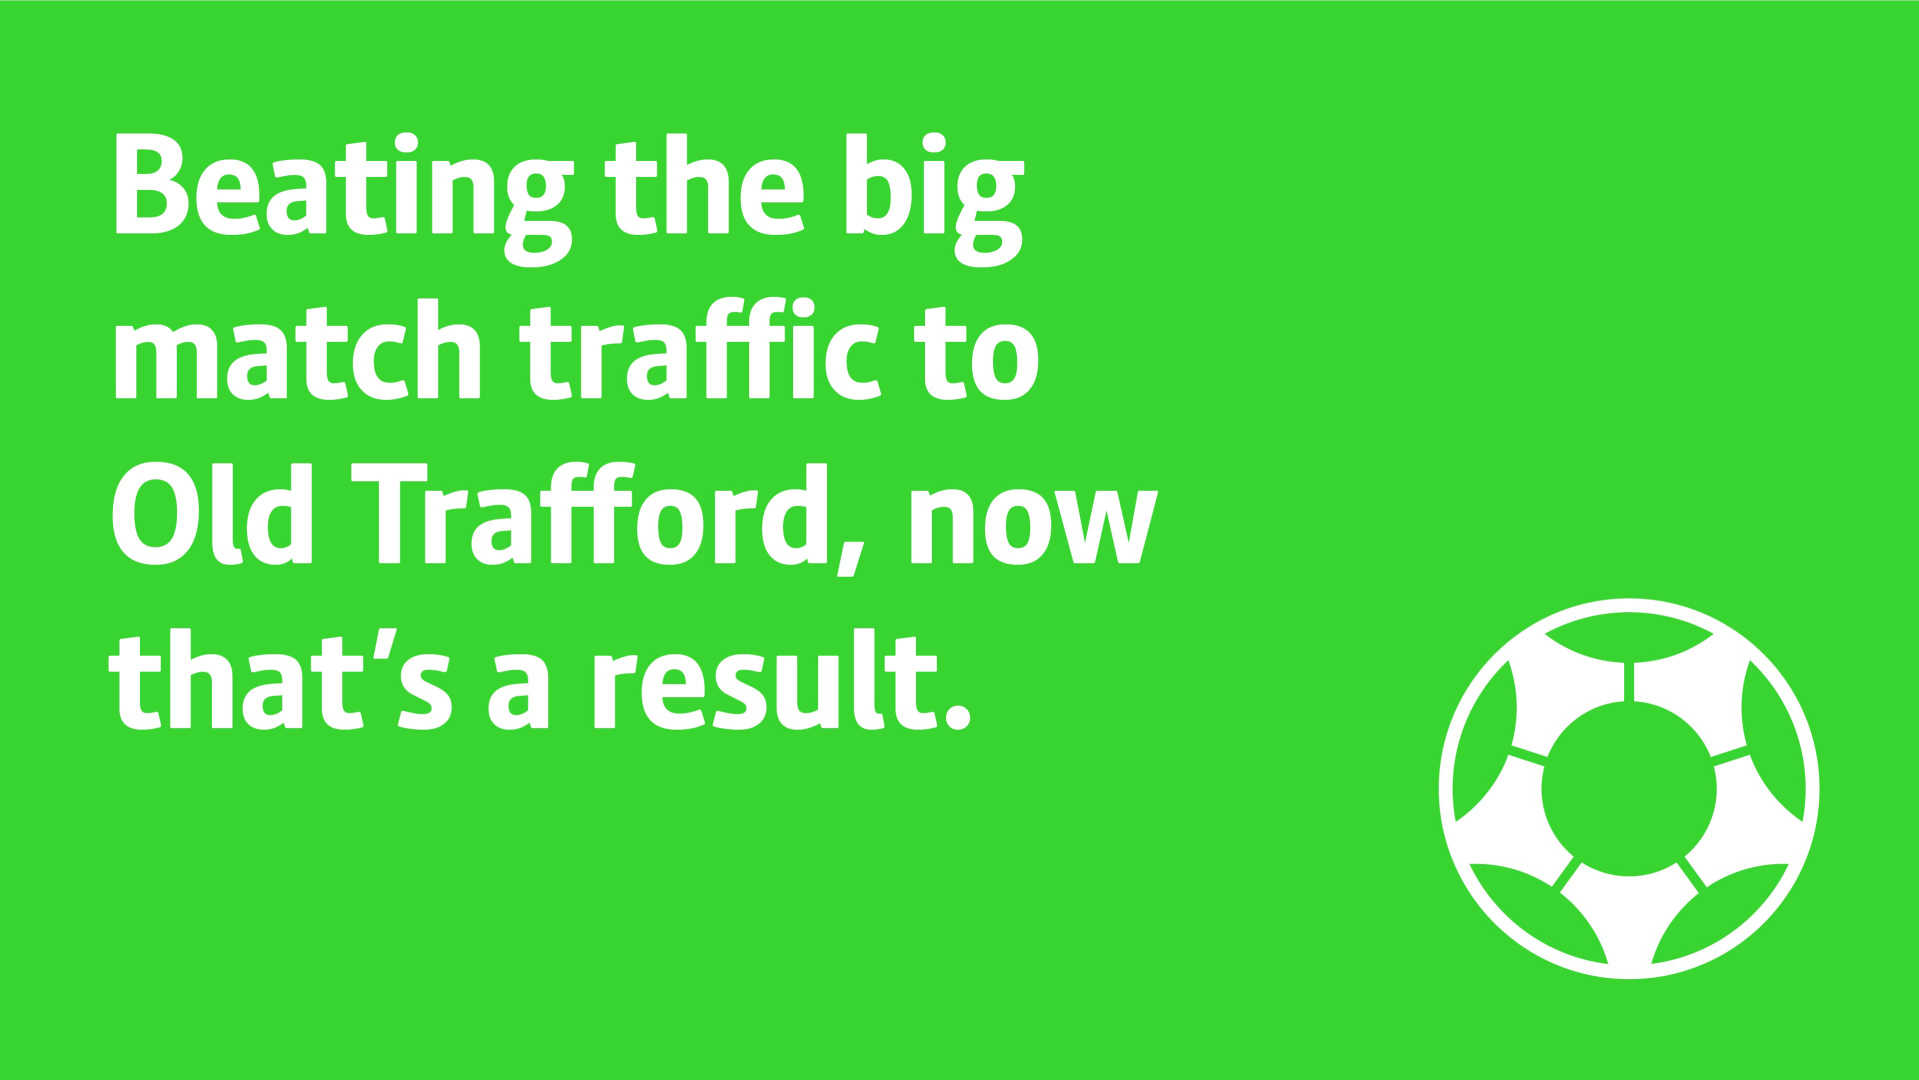 Beating the big traffic to Old Trafford, now that's a result.